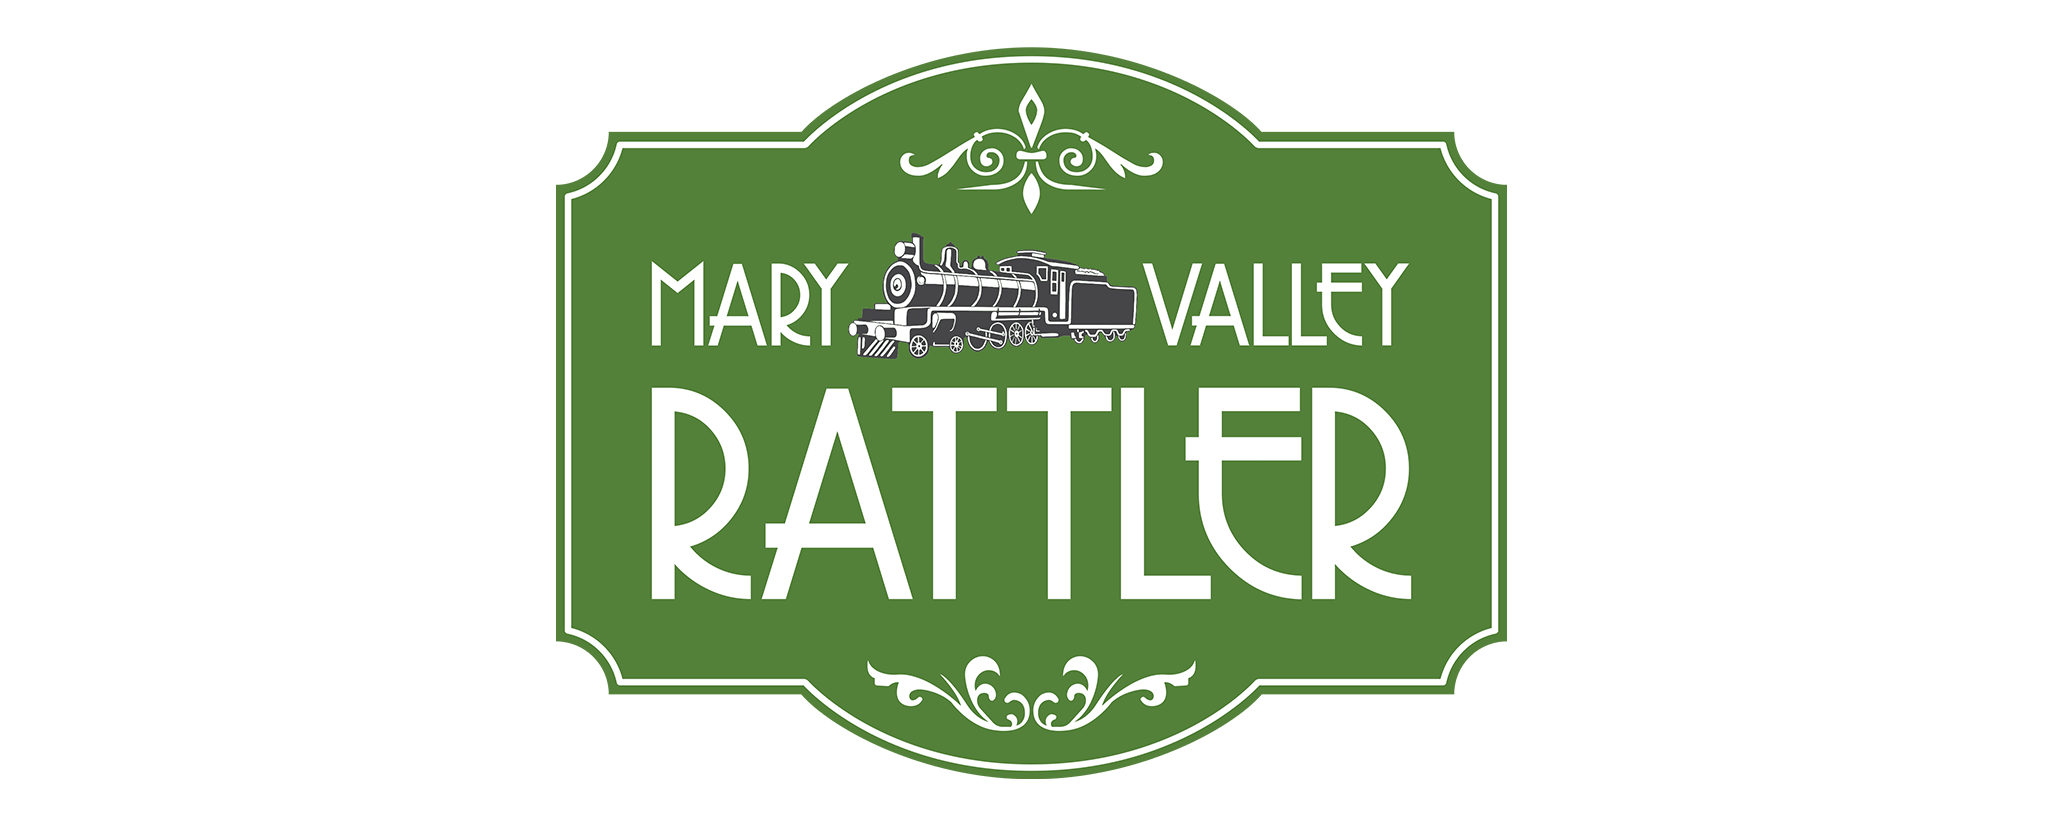 Mary Valley Rattler Logo